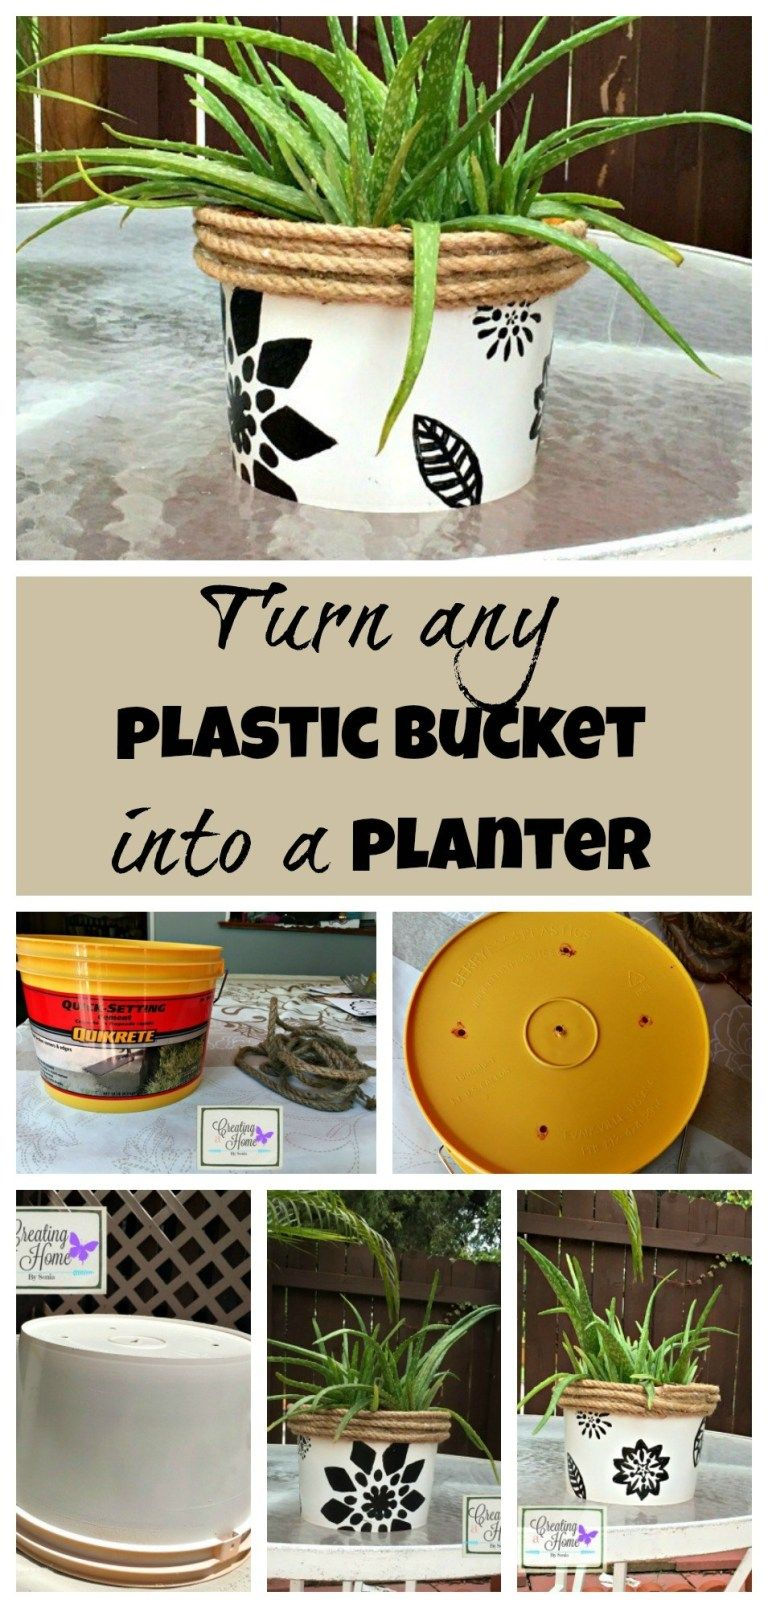 From Plastic Bucket To Planter Plant Pot Diy Plastic Flower Pots Flower Pots Outdoor